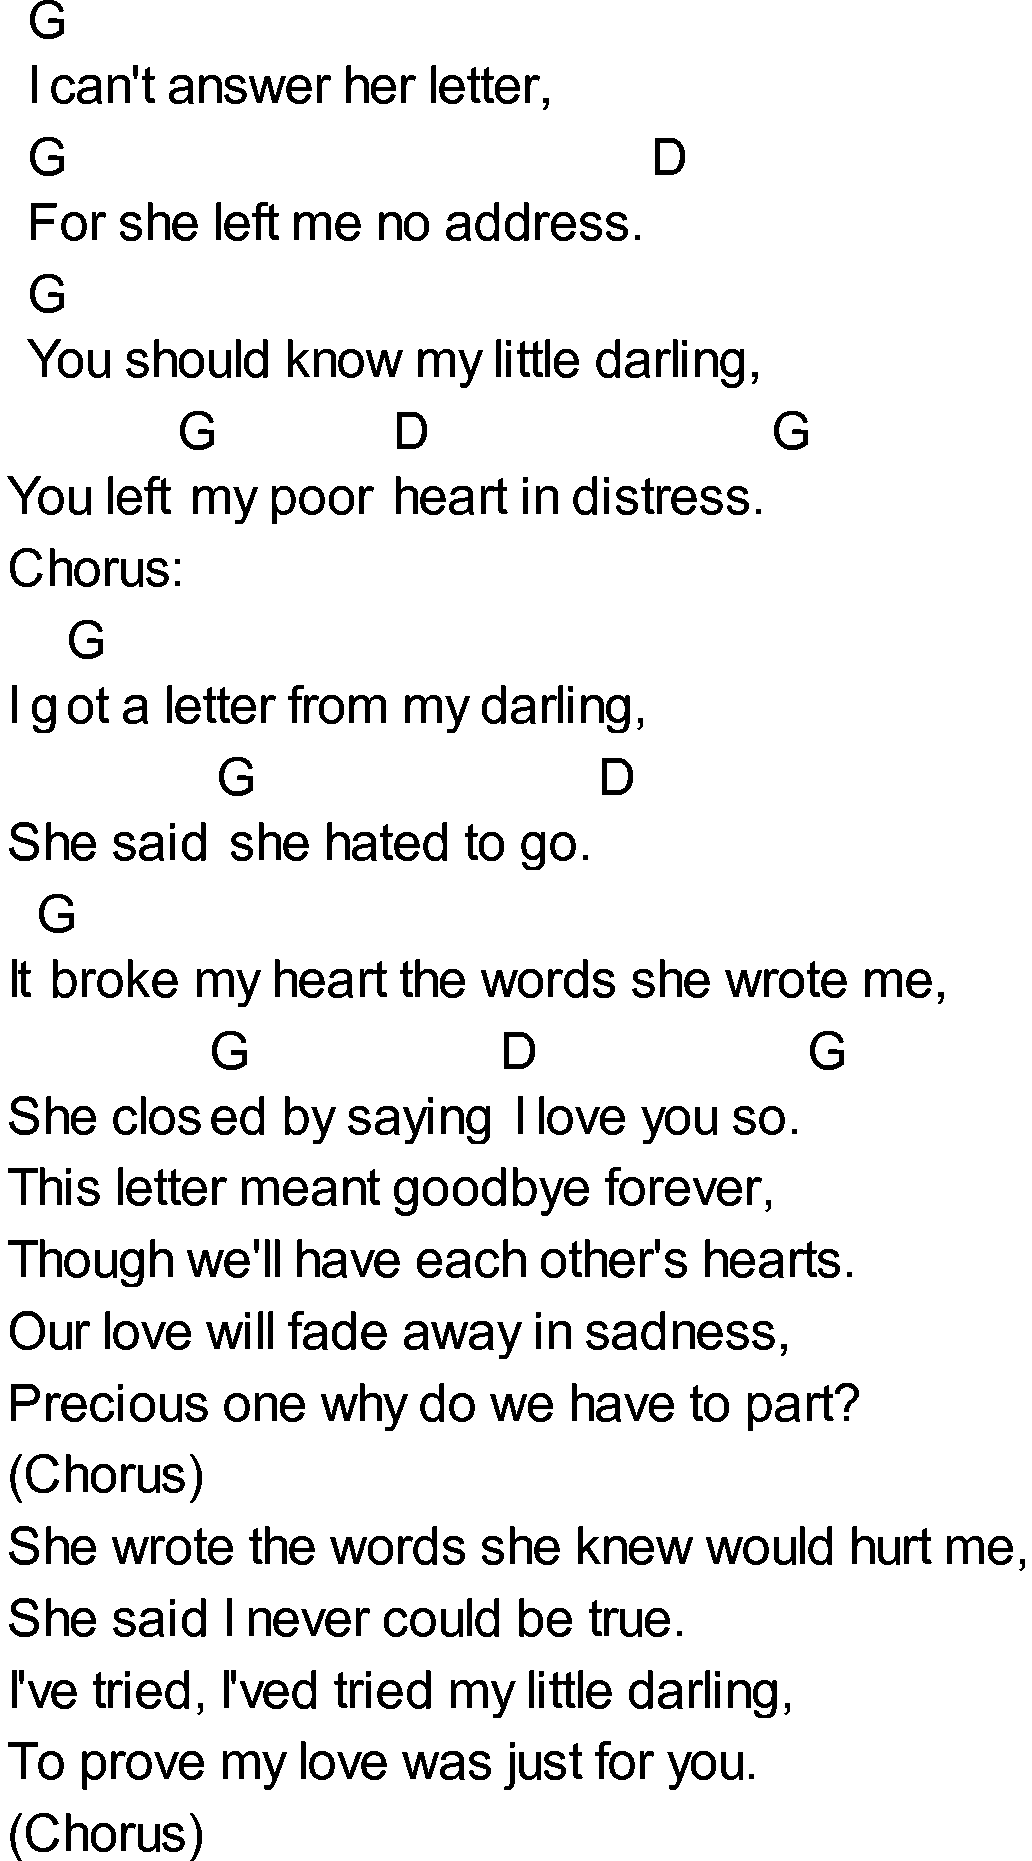 Exelent Letter To Me Chords Illustration  Song Chords Images  Apa